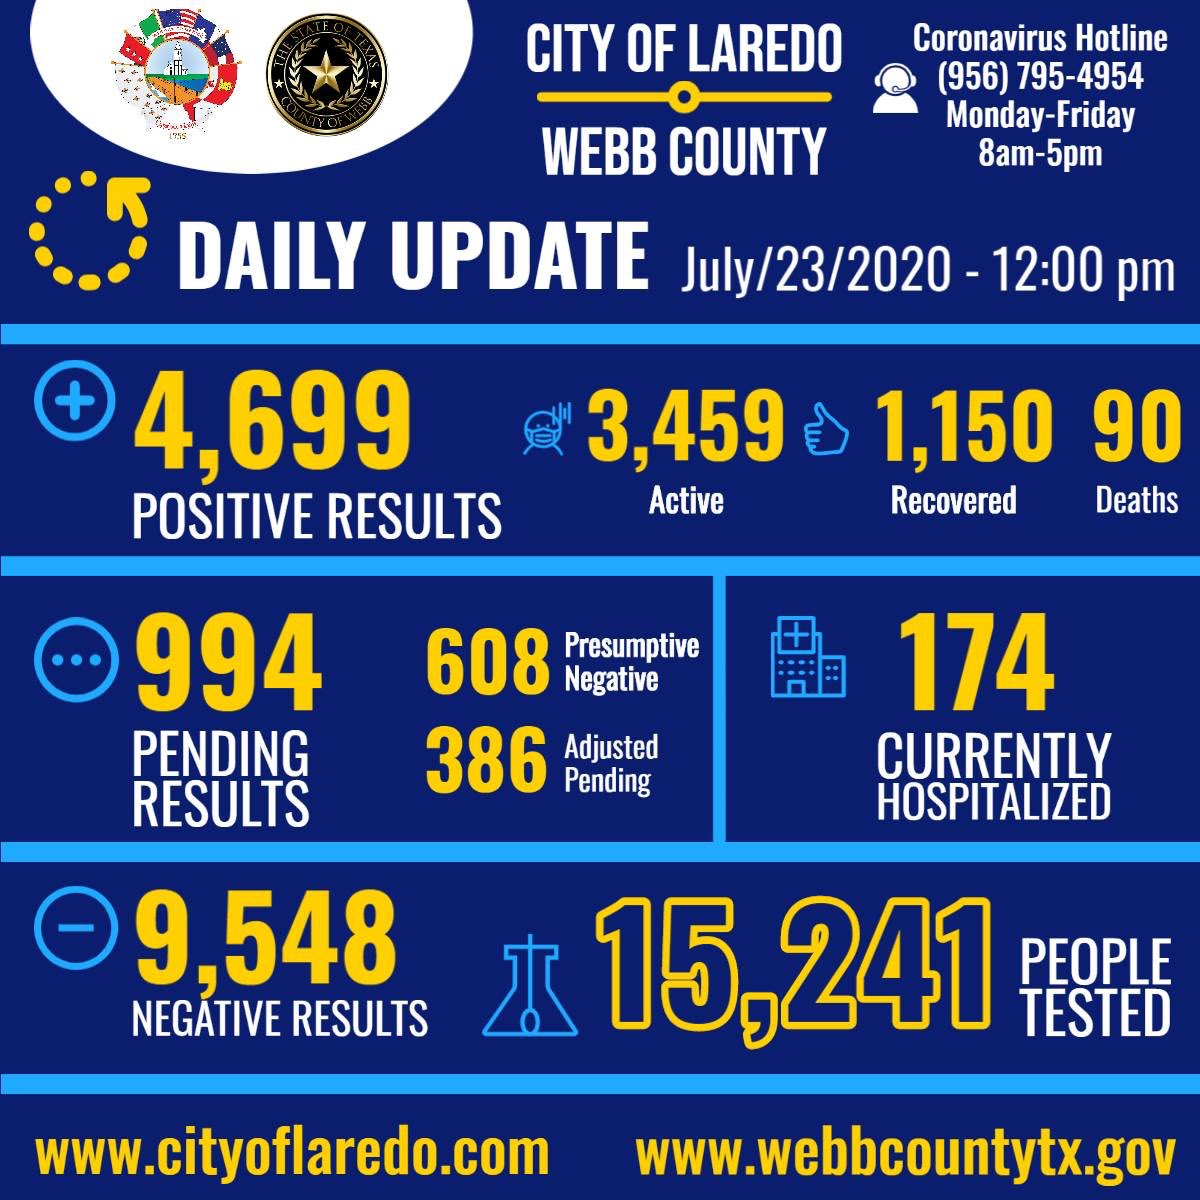 COVID-19 Update July 23- As of 12:00 p.m. – 15,241 people have been tested; 4,699 are positive (3,459 active); 9,548 are negative; 994 are pending; 1,150 have recovered; and 90 have passed. 174 are currently hospitalized, 64 of which are in the ICU.